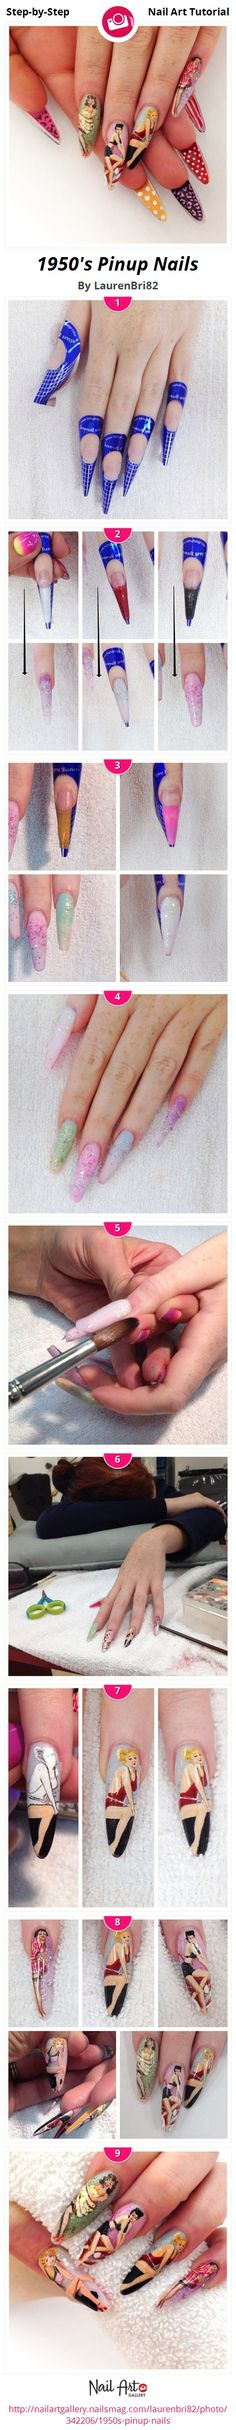 Pinup Nails by Nail Art Gallery Step-by-Step Tutorials nail - Nagellack Sexy Nails, Fancy Nails, Love Nails, Fabulous Nails, Gorgeous Nails, Spring Nail Trends, Pin Up, Different Nail Designs, Nail Polish Art